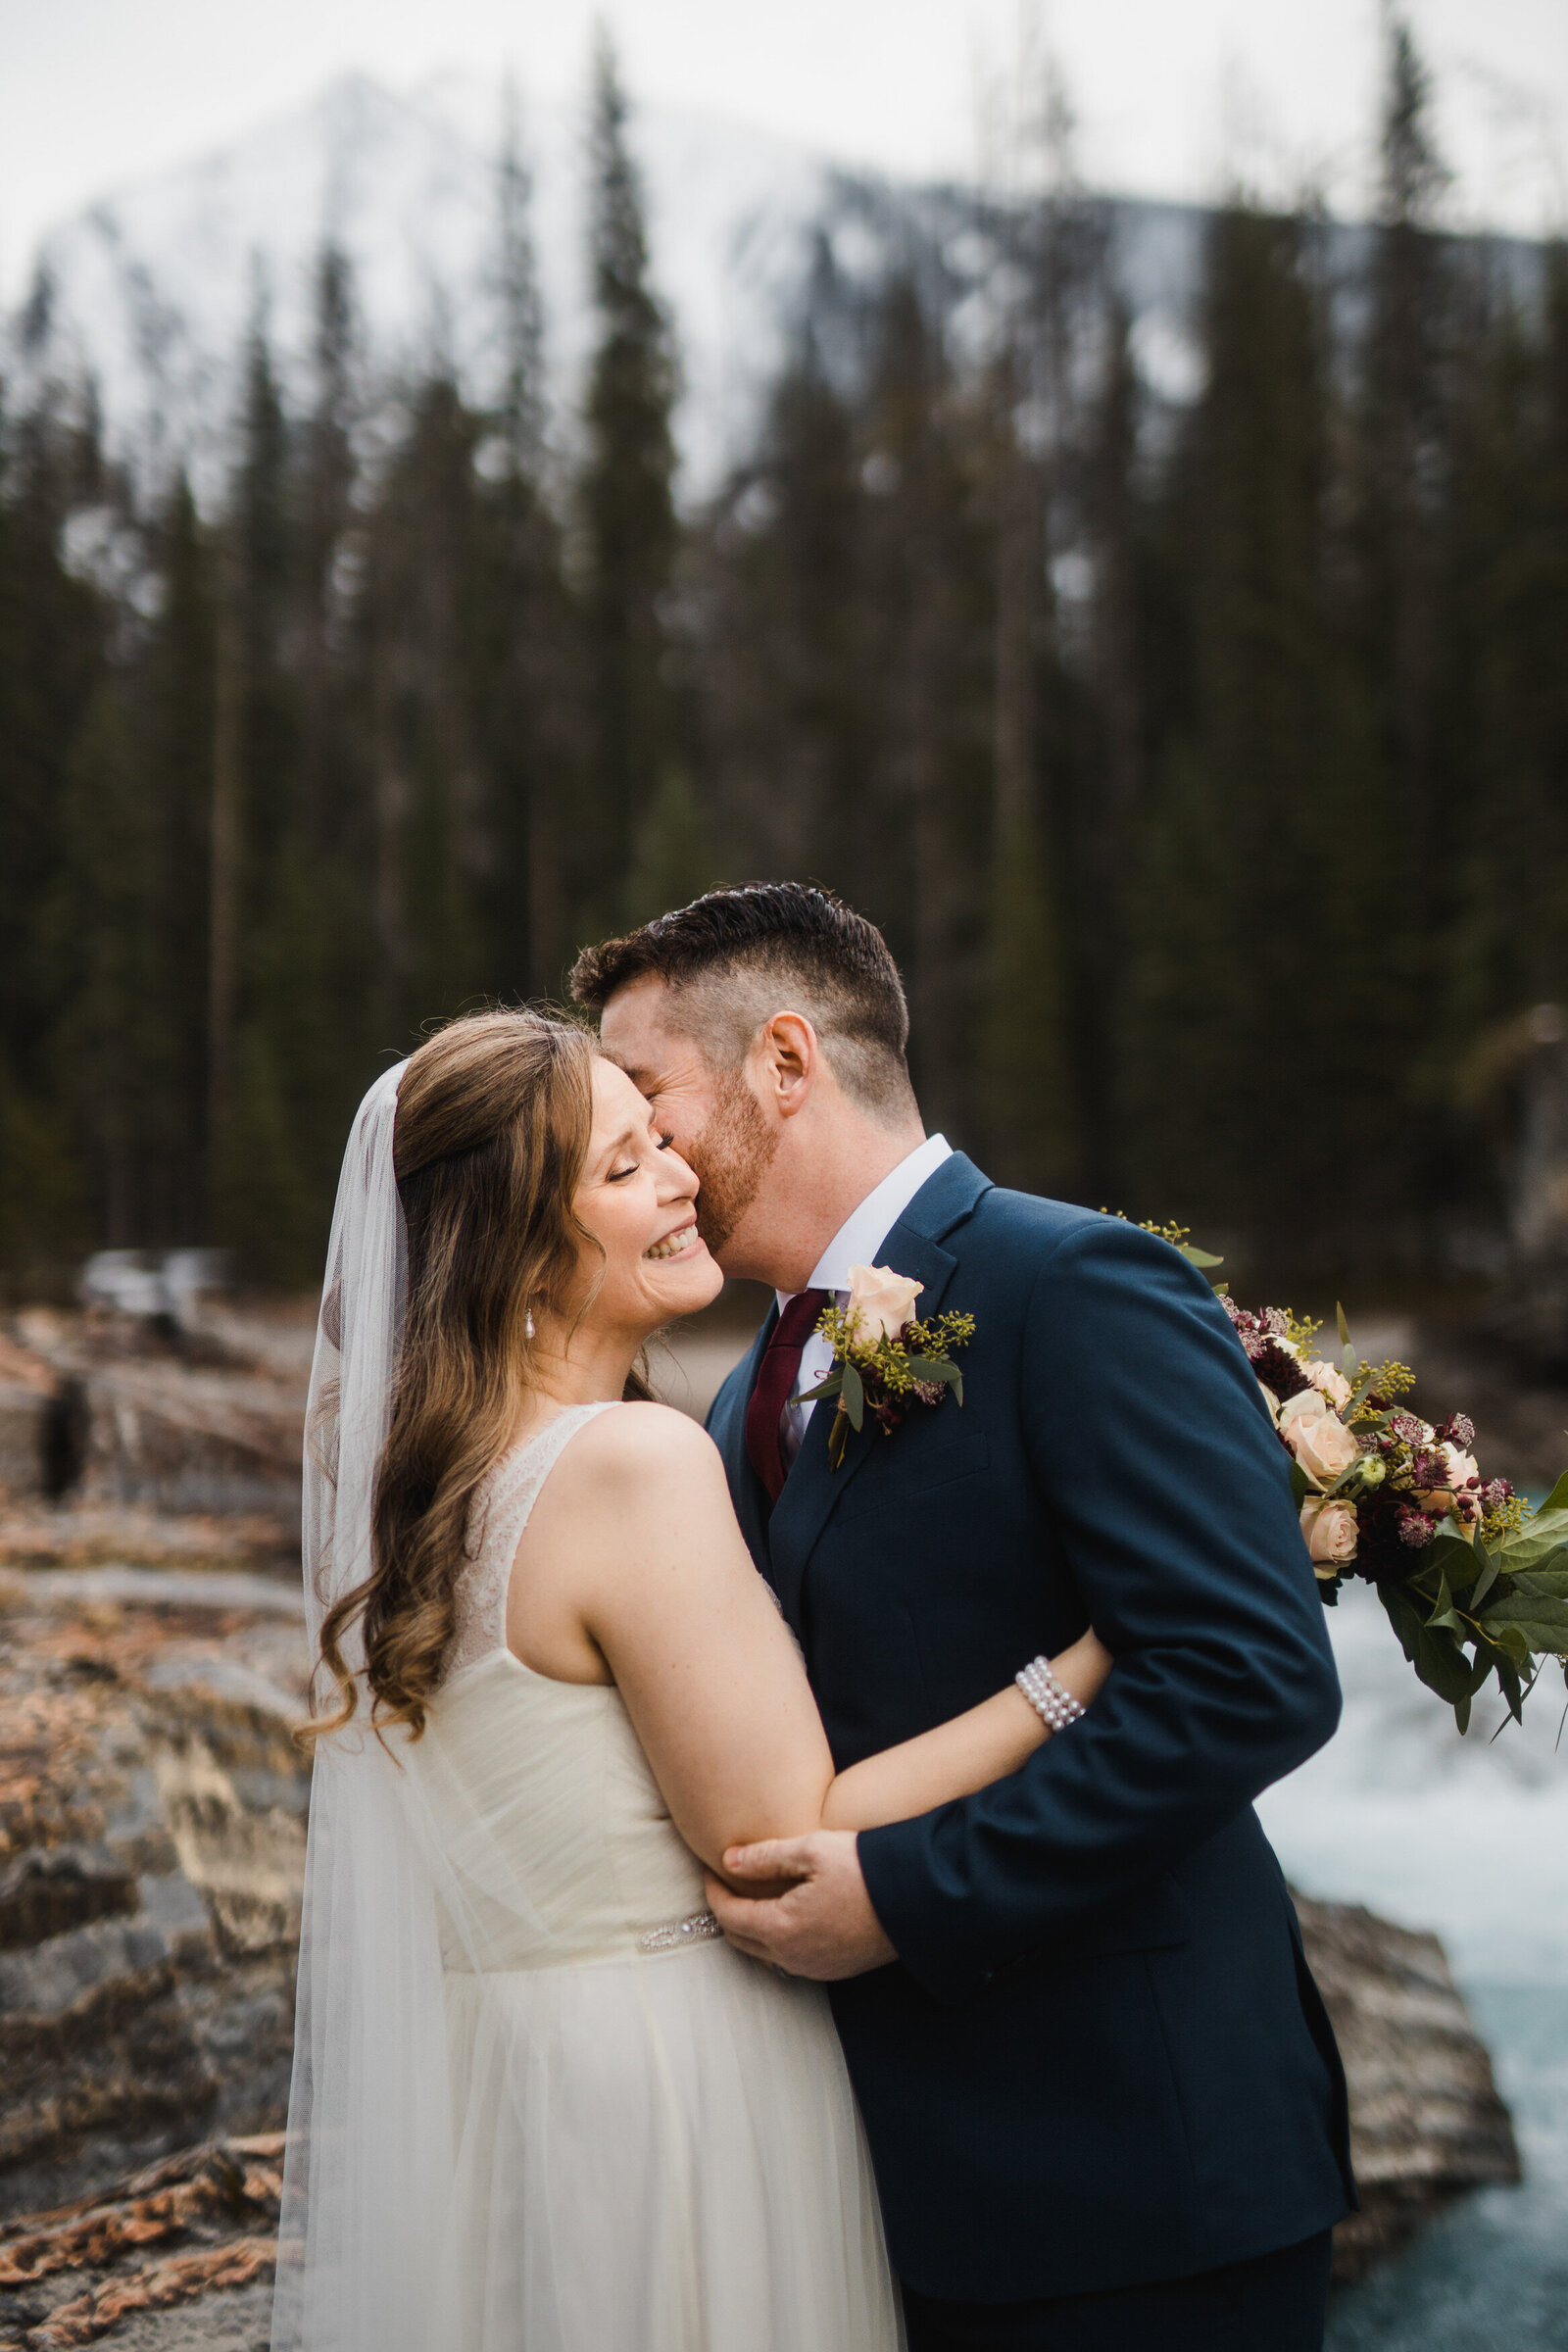 banff.wedding.photographer--26-1